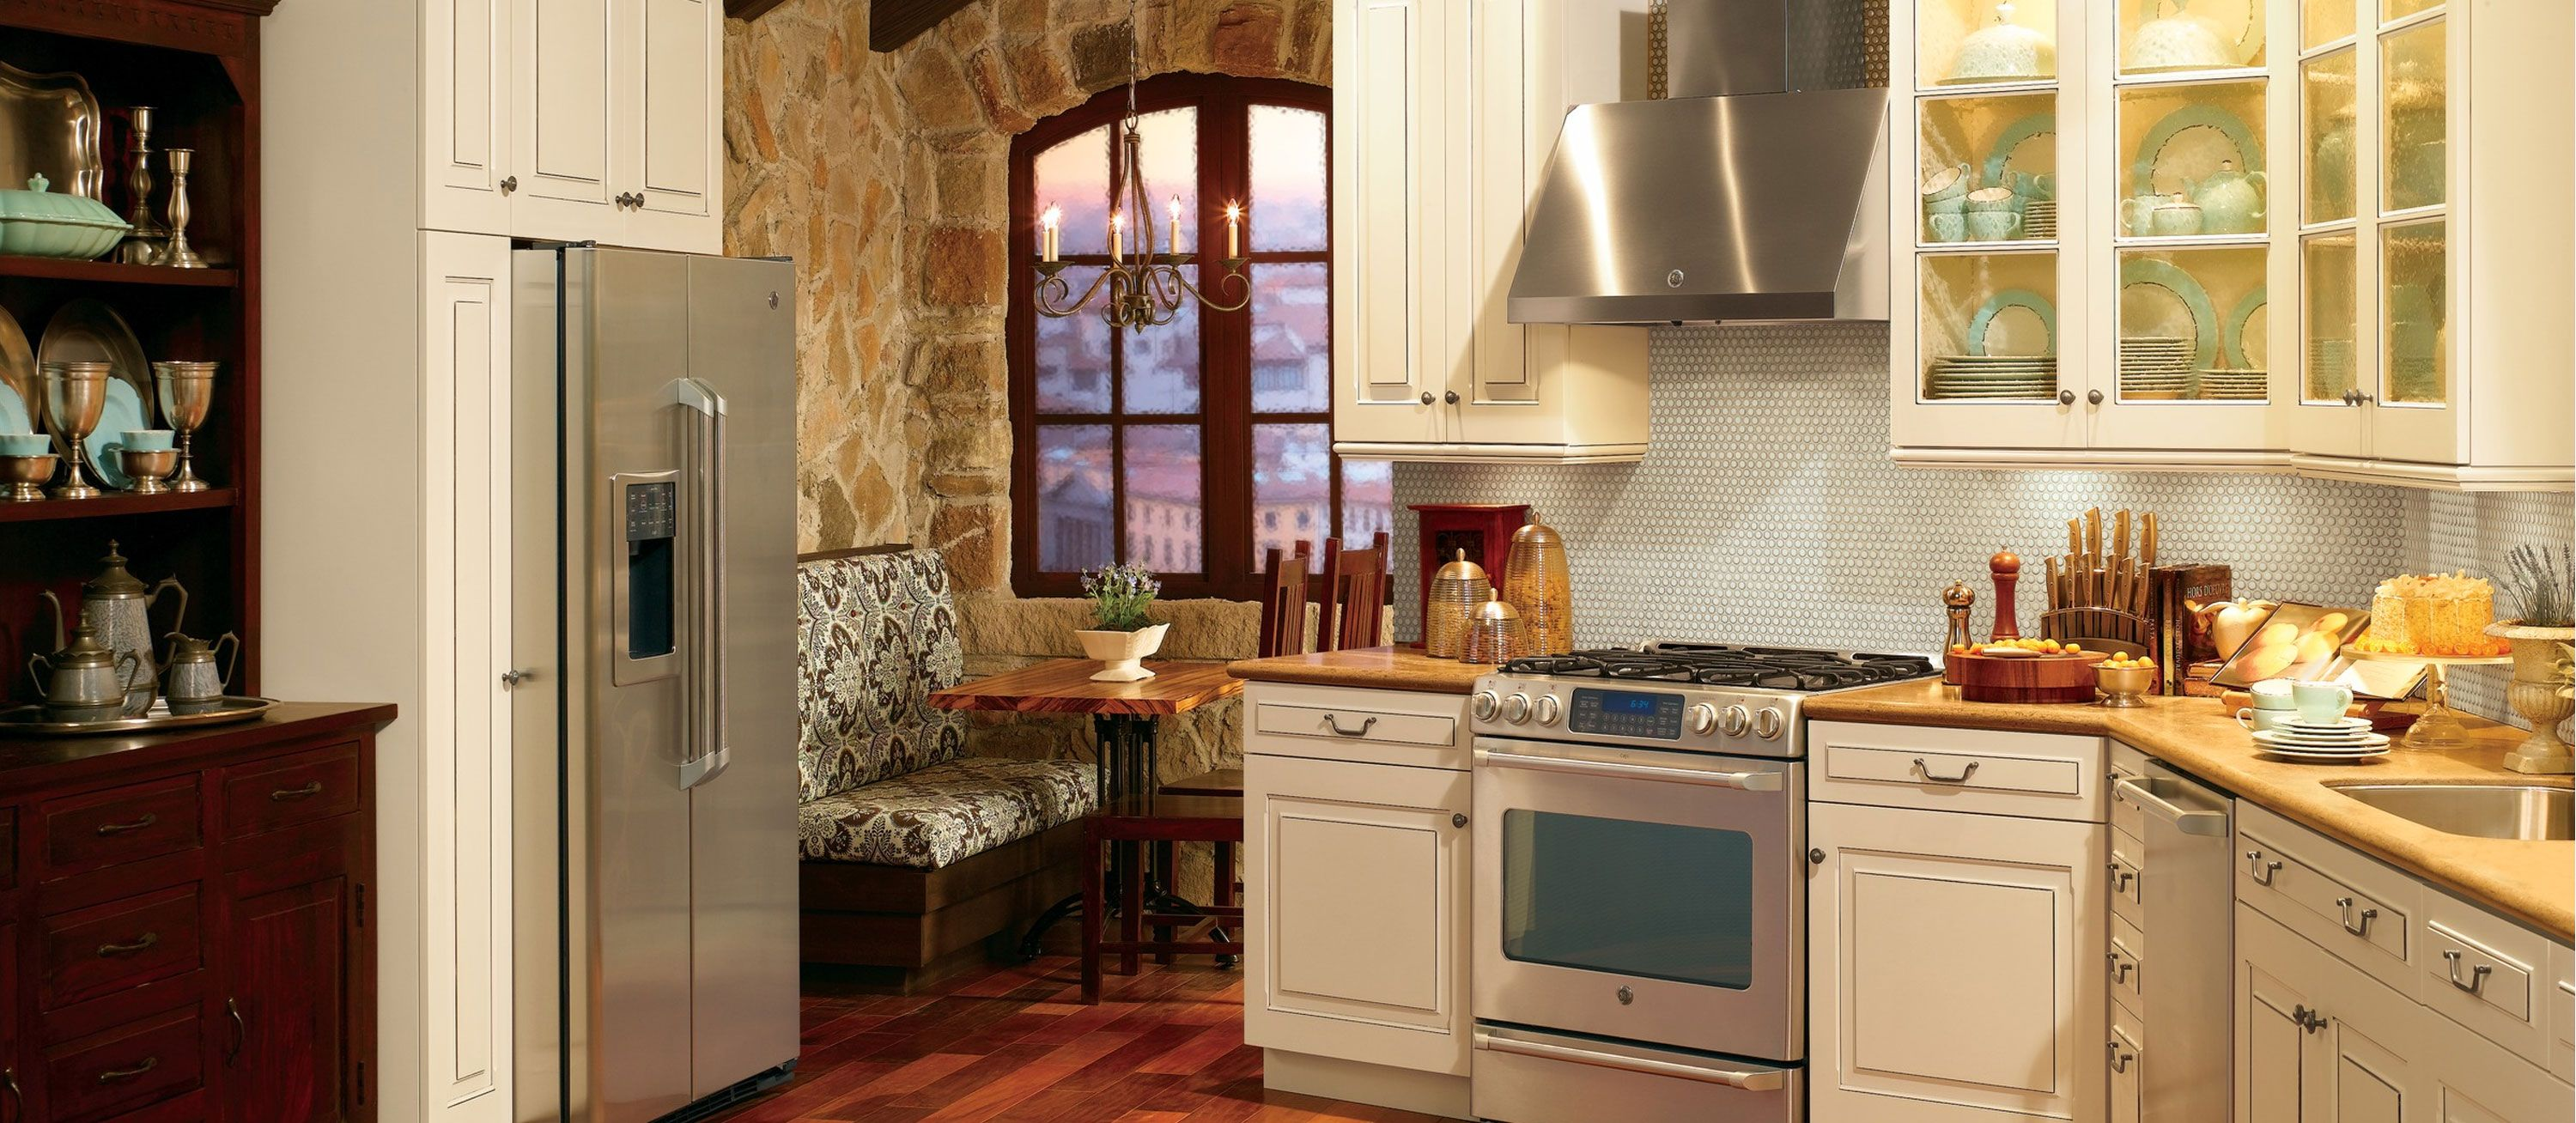 tuscan kitchen | Kitchen Photo Gallery | Tuscan Kitchen | Tuscan ...